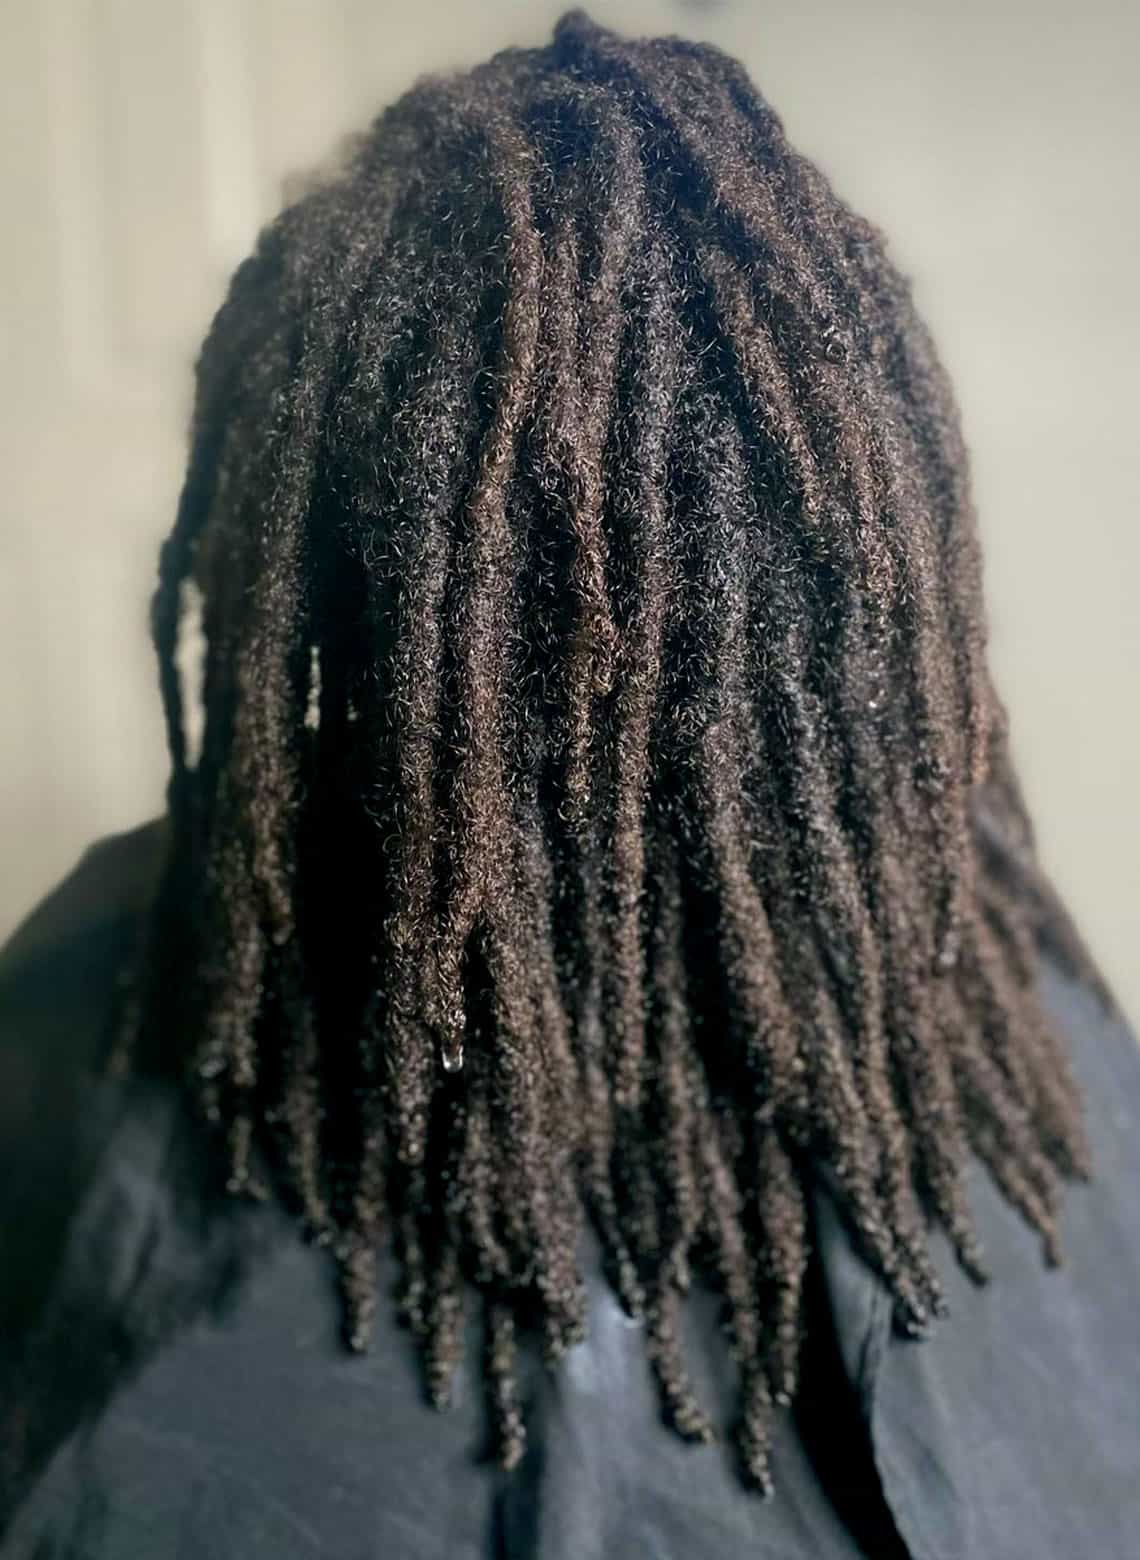 person with locs